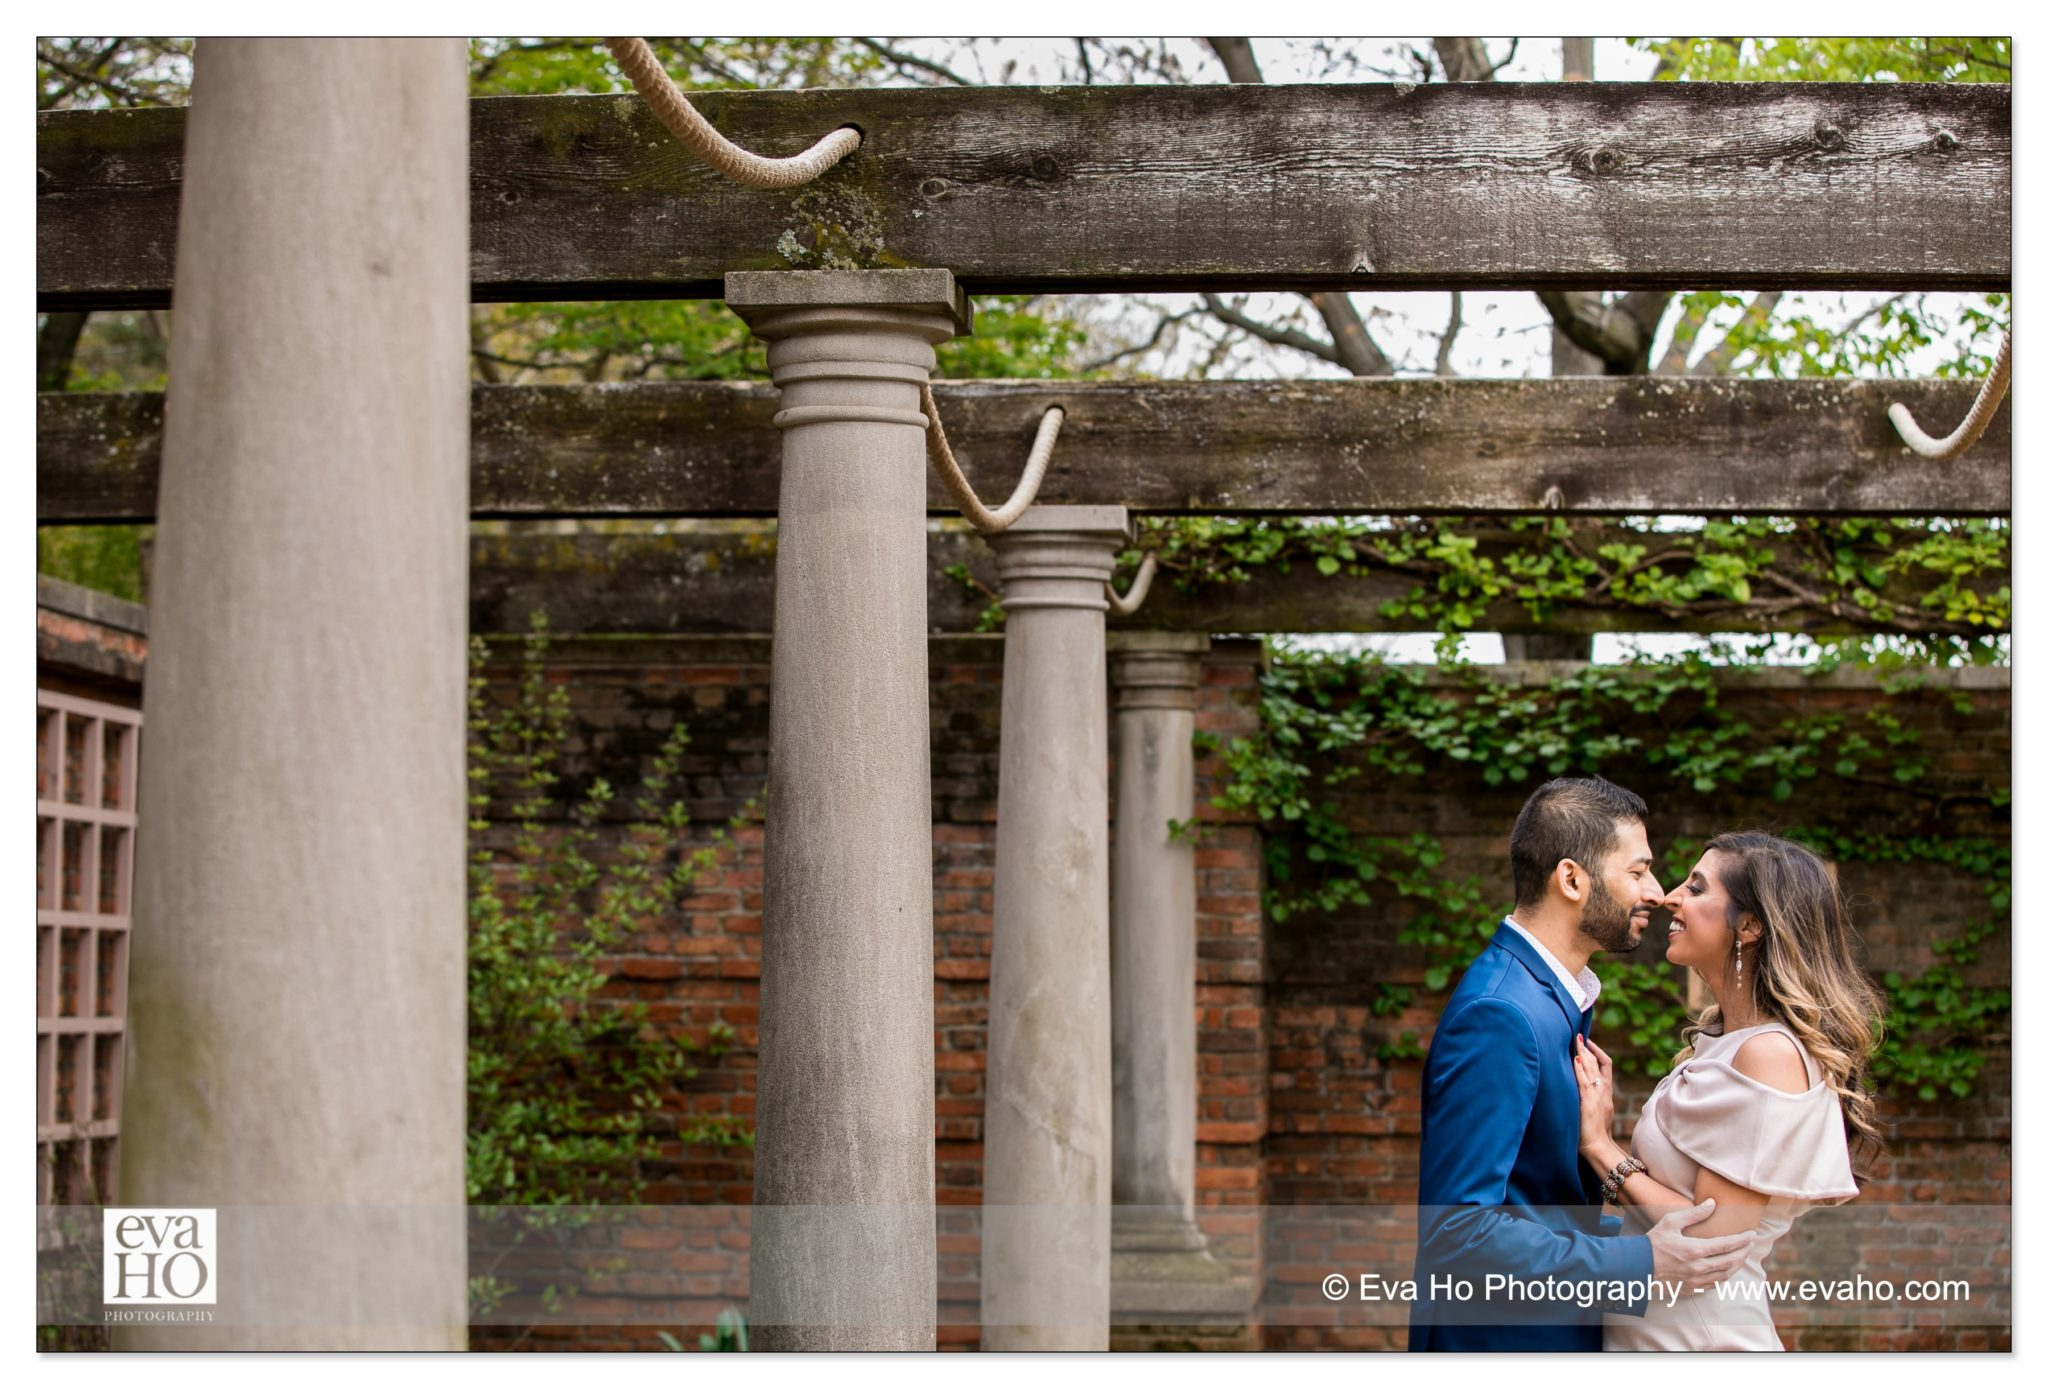 Couple snuggle under the beautiful Roman structure inside the Rose Garden at the Chicago Botanic Garden.